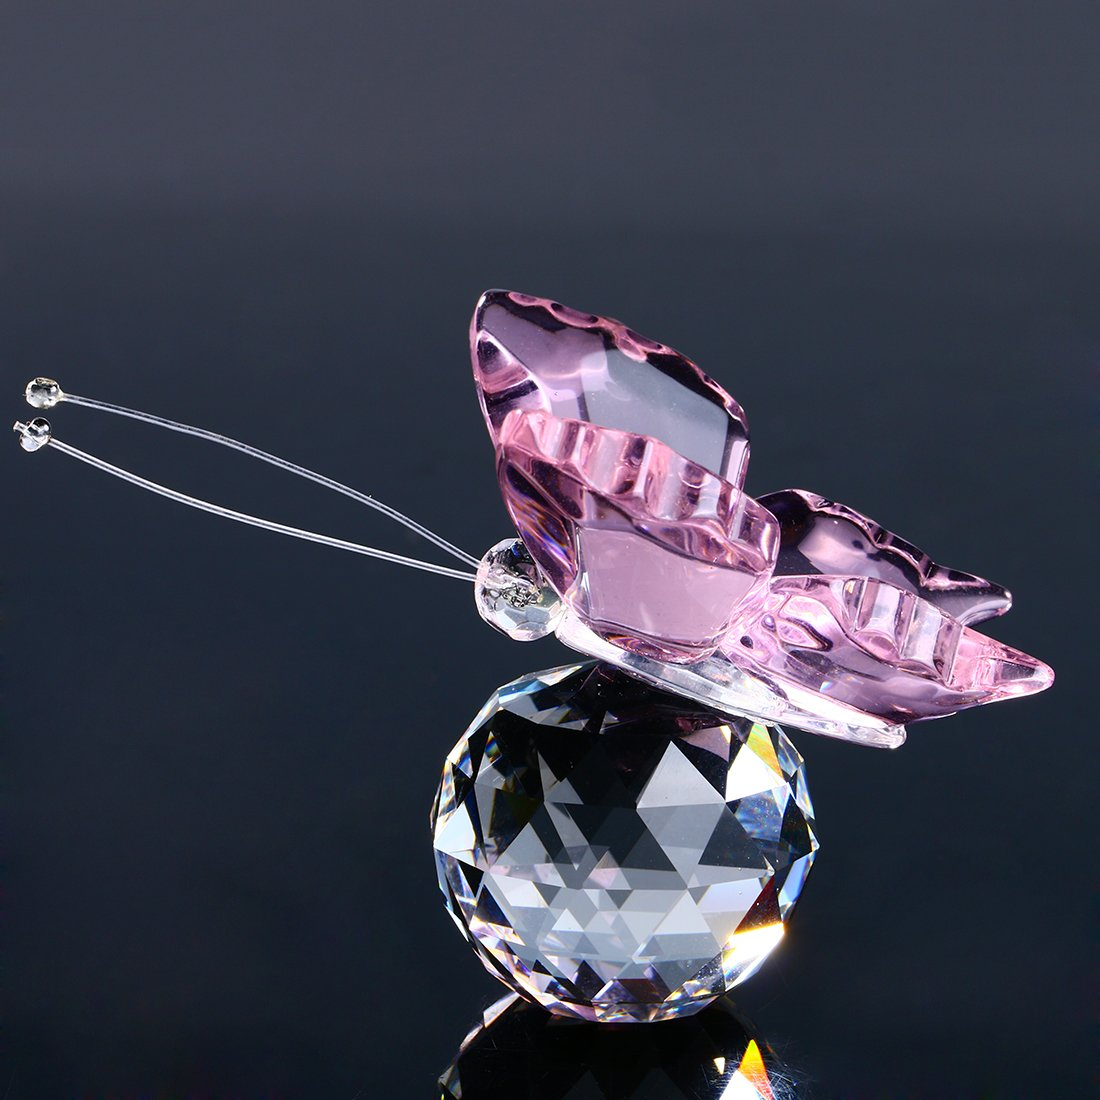 H/&D Pink Crystal Flying Butterfly with Crystal Ball Base Figurine Collection Cut Glass Ornament Statue Animal Collectible